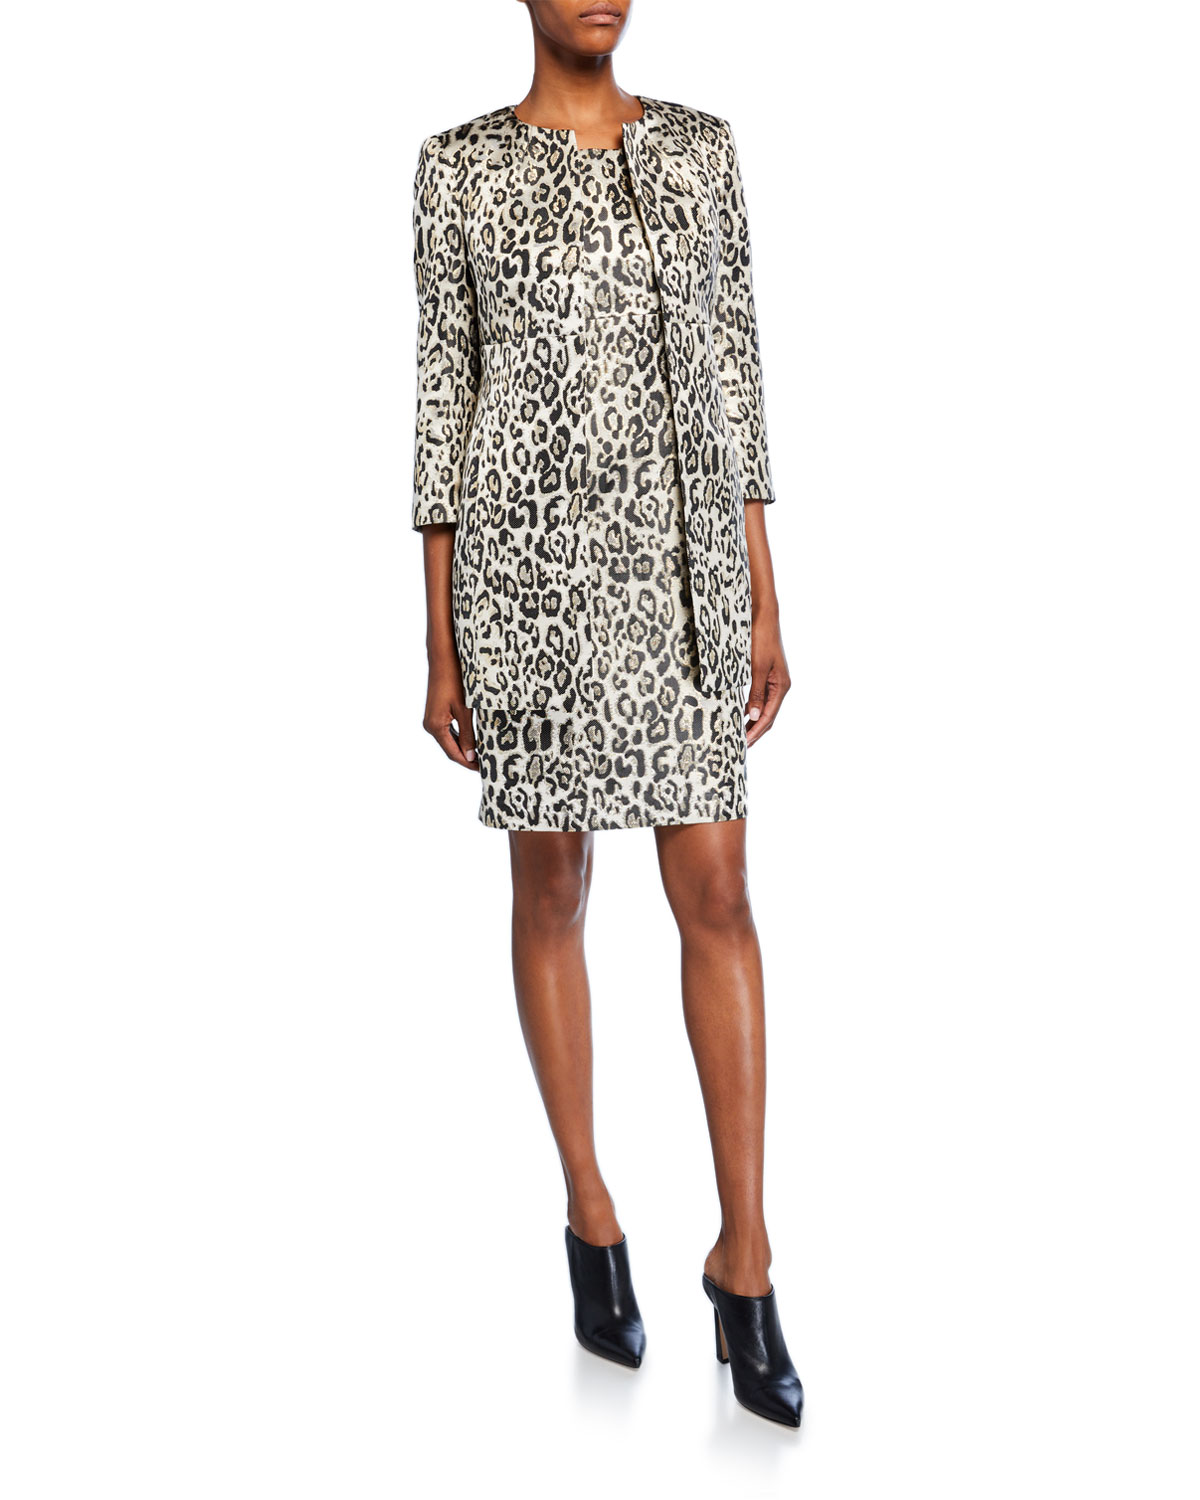 Albert Nipon Metallic Animal Jacquard 3/4-Sleeve Topper Jacket & Dress Set